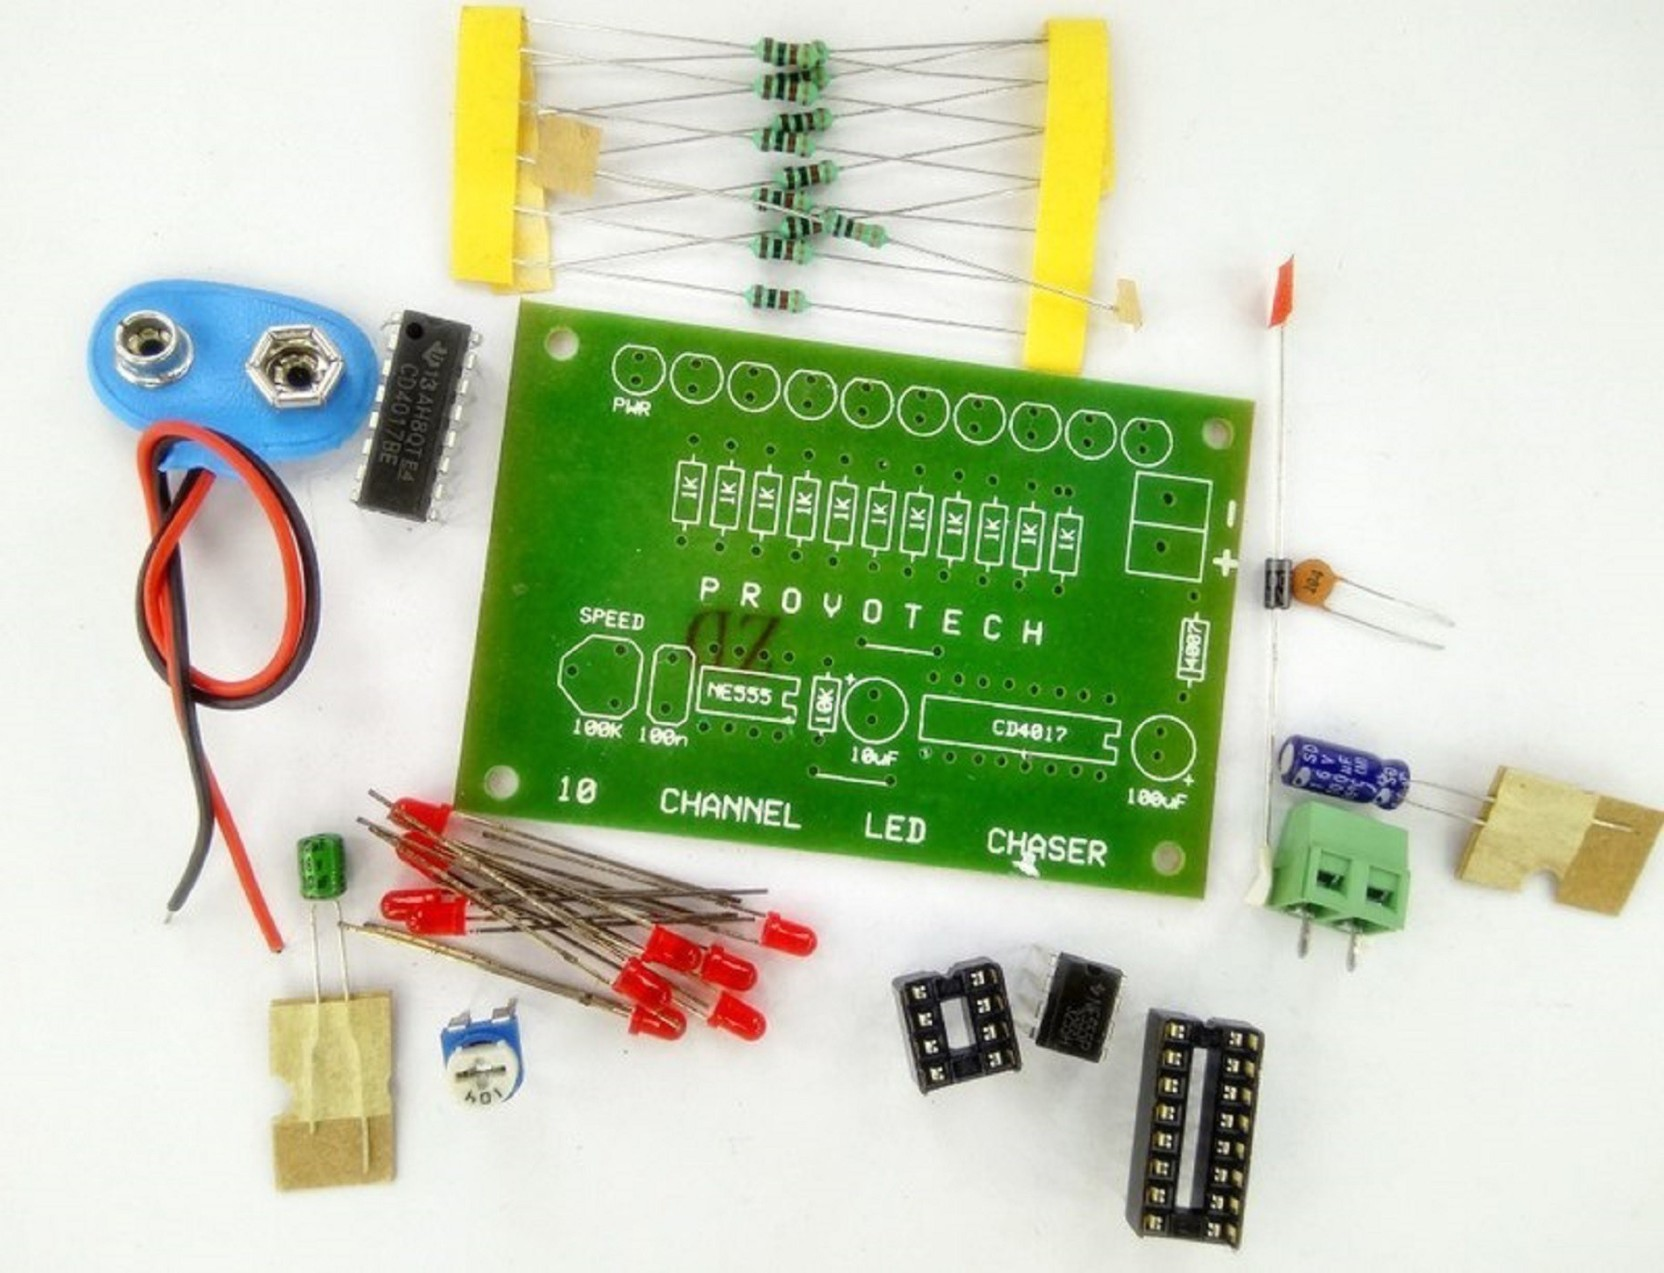 Sunrobotics 10 Channel Led Chaser Diy Kit Educational Electronic Sewn Circuit With 555 Timer On Offer